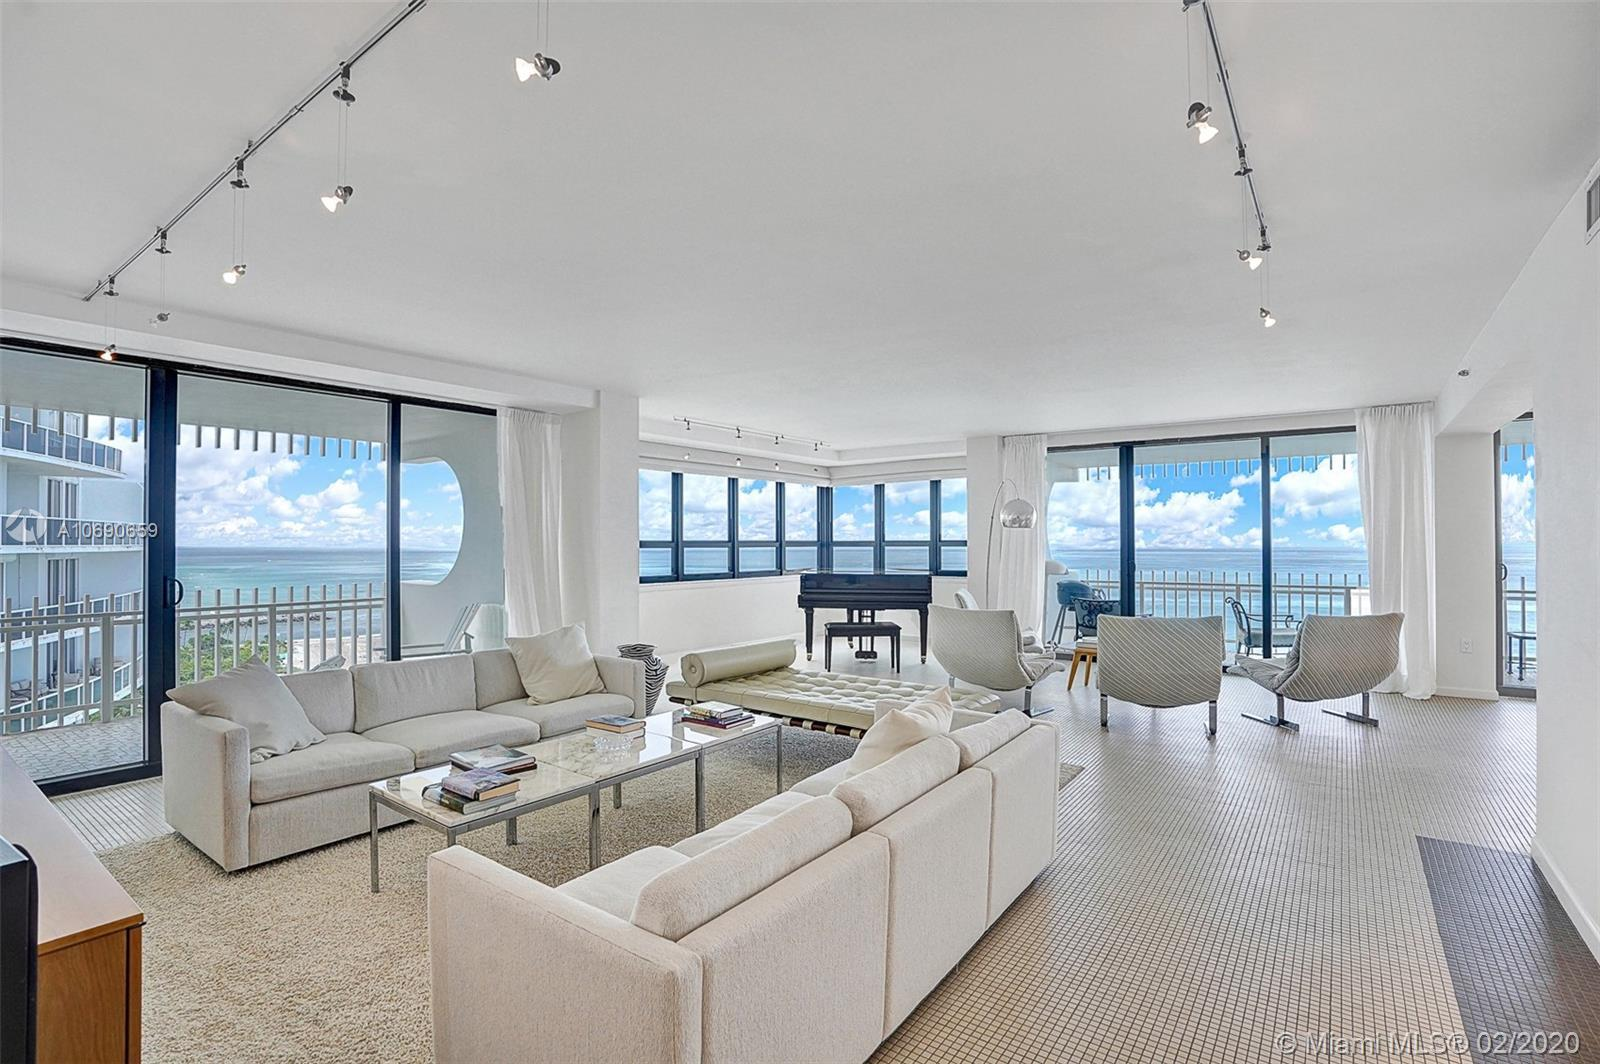 Spacious 3 bedroom, 2.5 bath on the beach at Kenilworth in Bal Harbour. Panoramic, direct ocean view